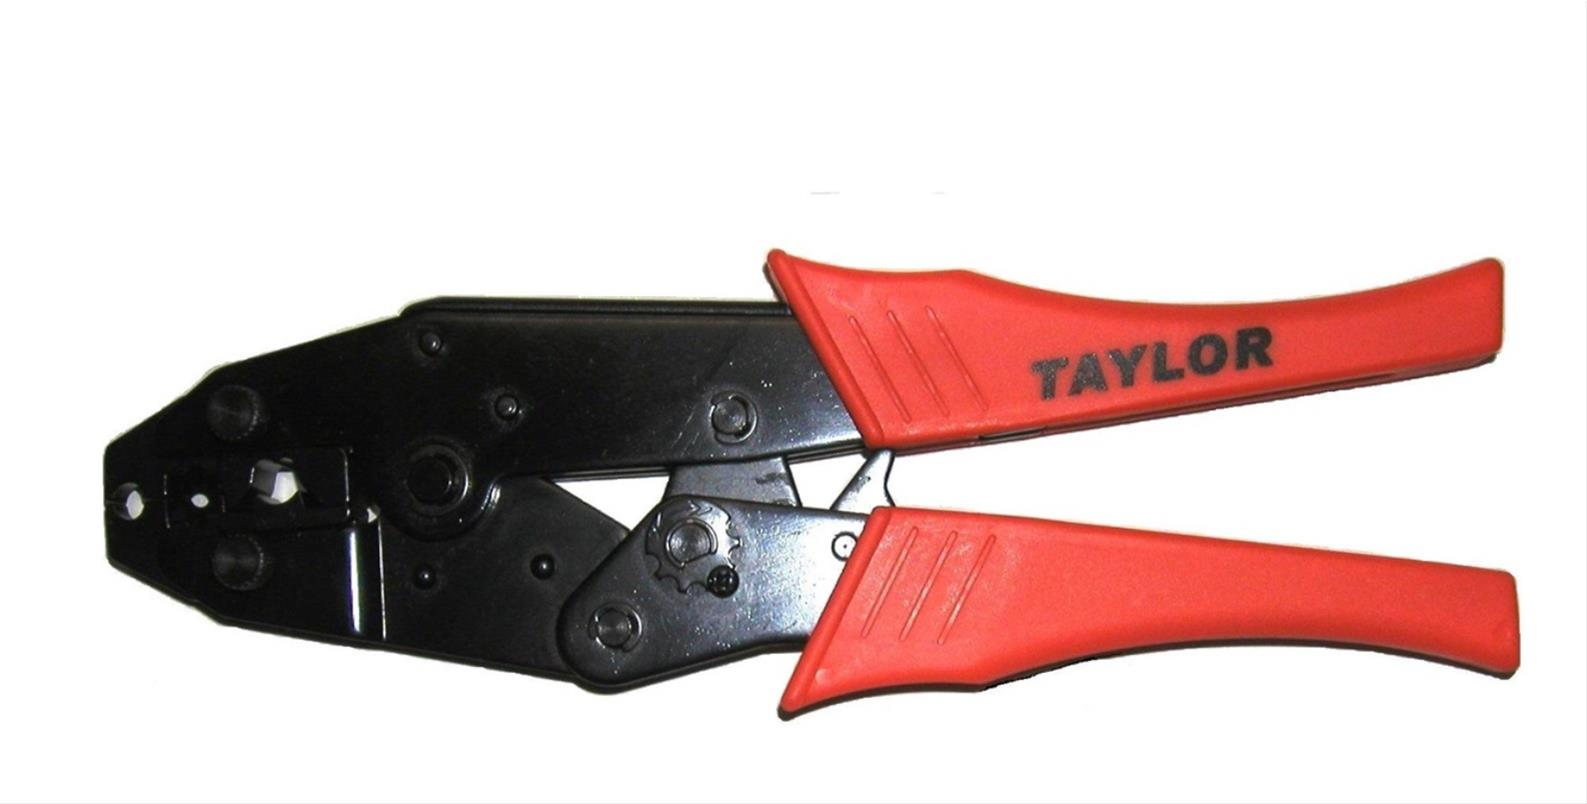 Taylor Professional Wire Crimping Tools 43400 Free Shipping On A Wiring And Tool Is Used To Orders Over 99 At Summit Racing